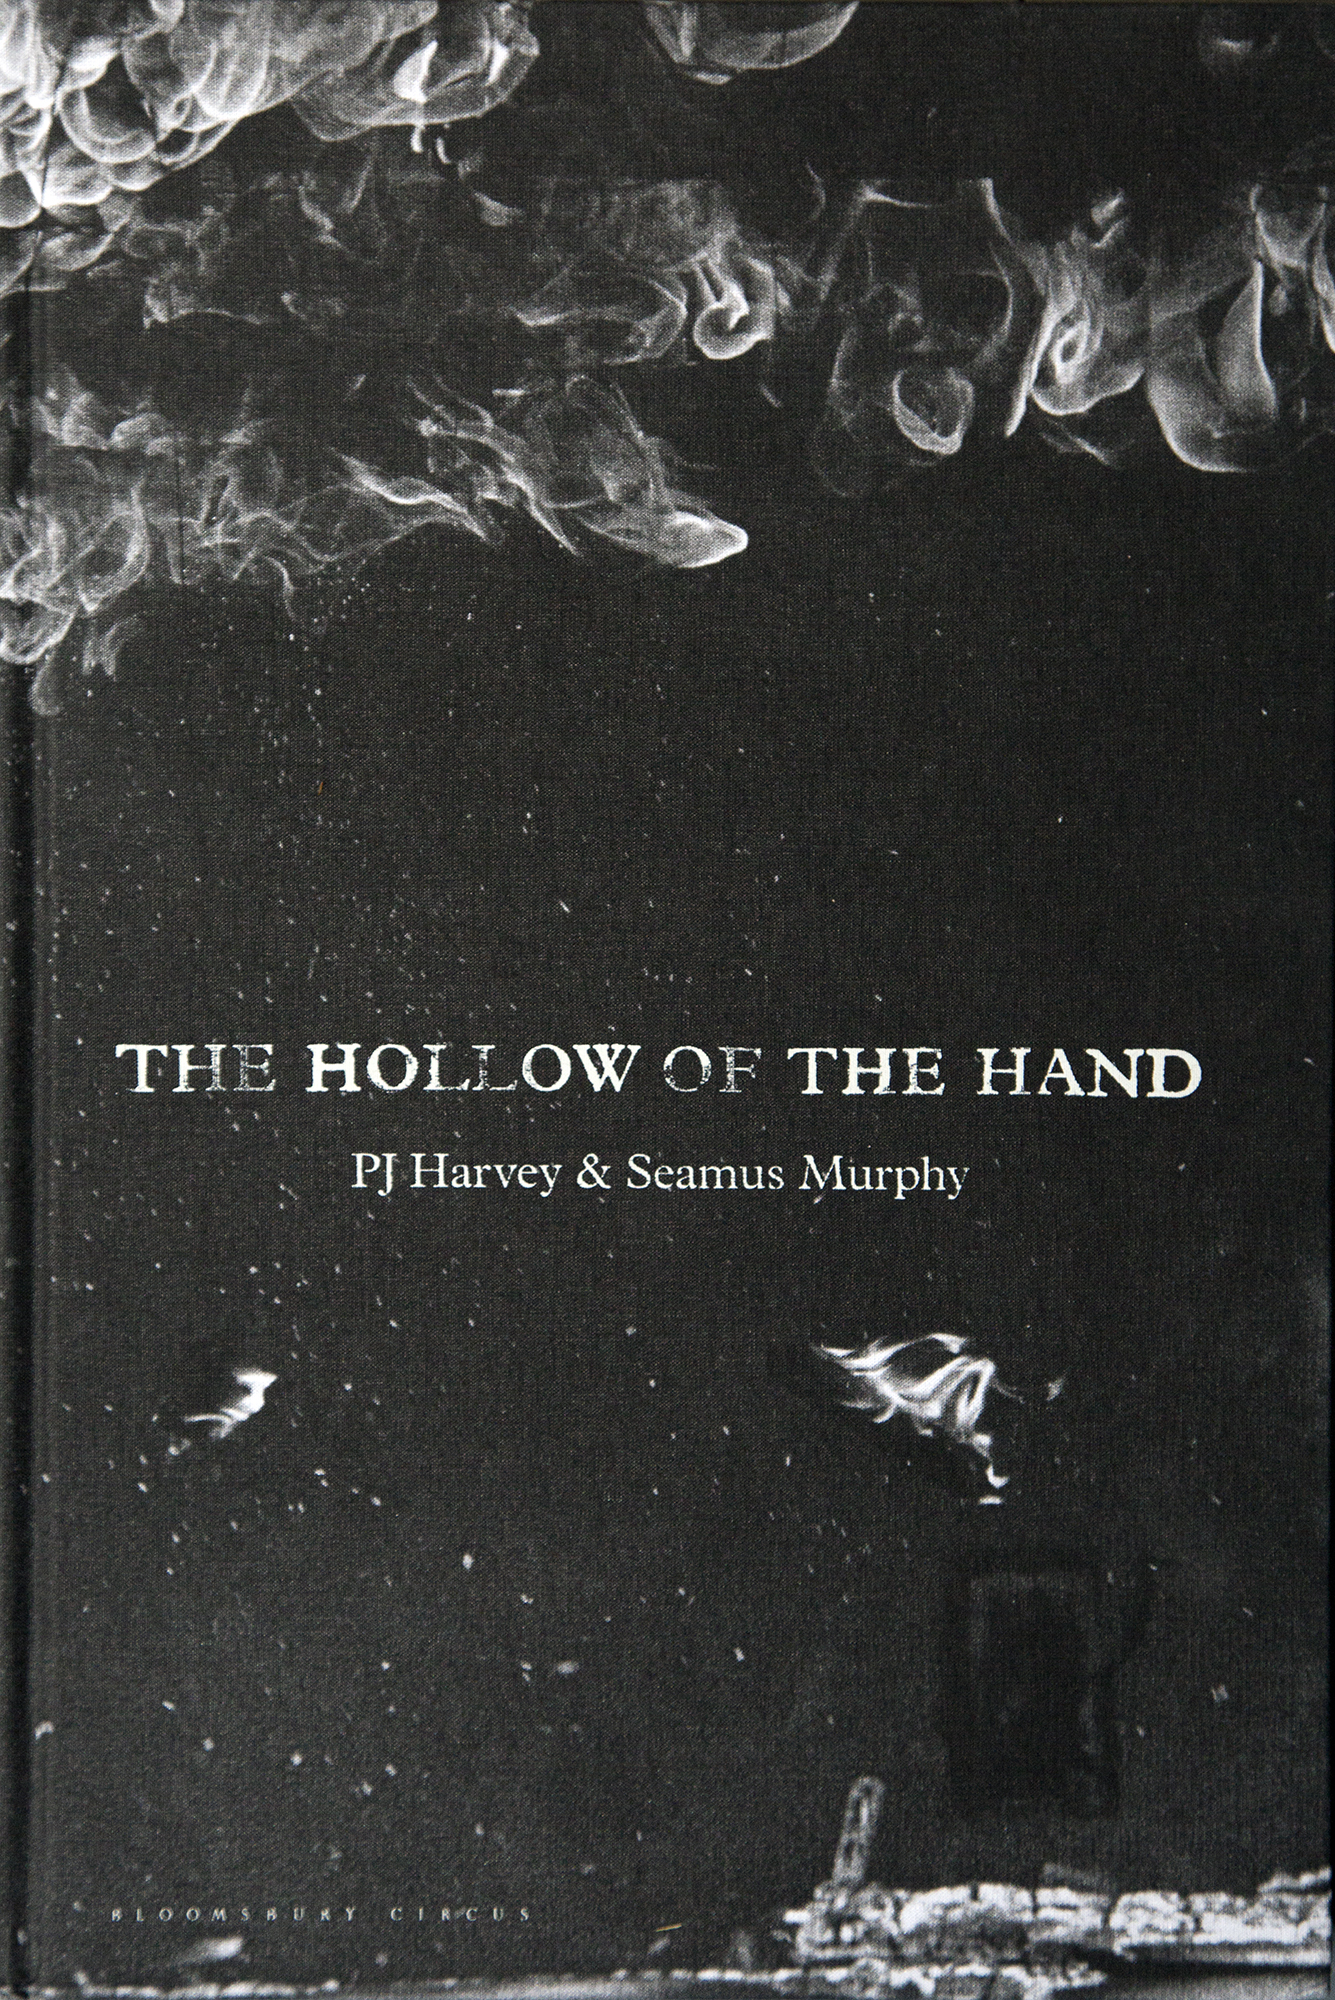 3. The Hollow of the Hand